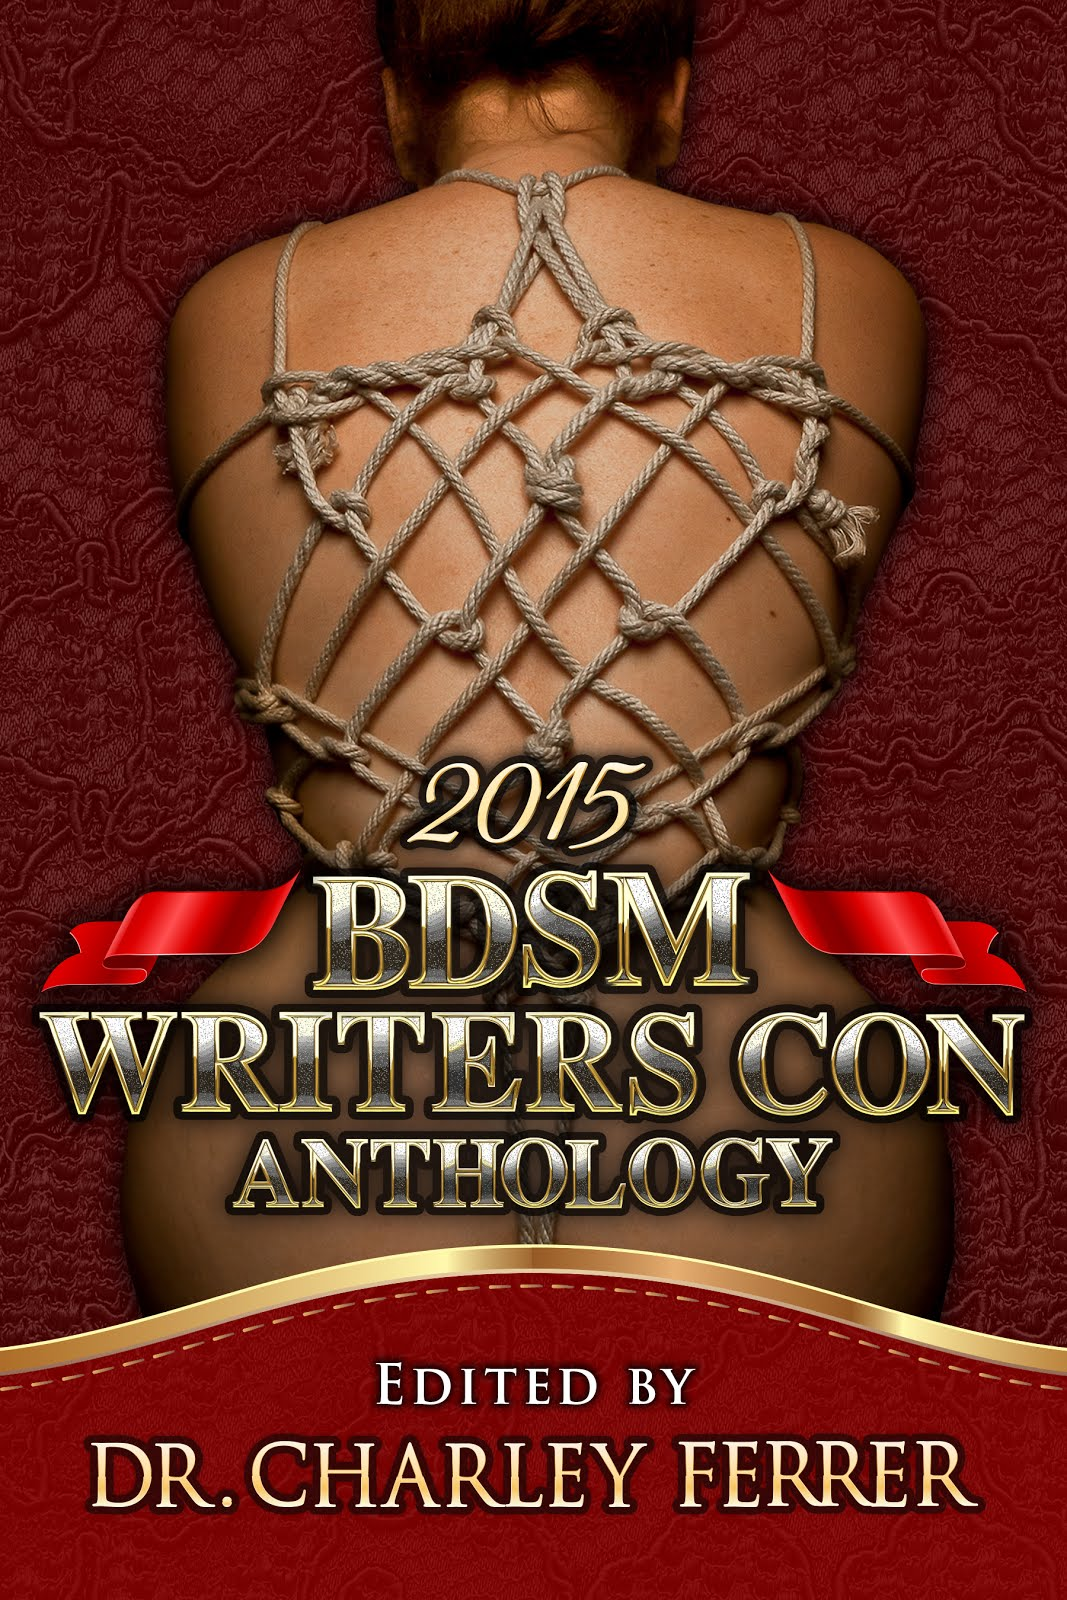 BDSM 2015 Writers Con Anthology